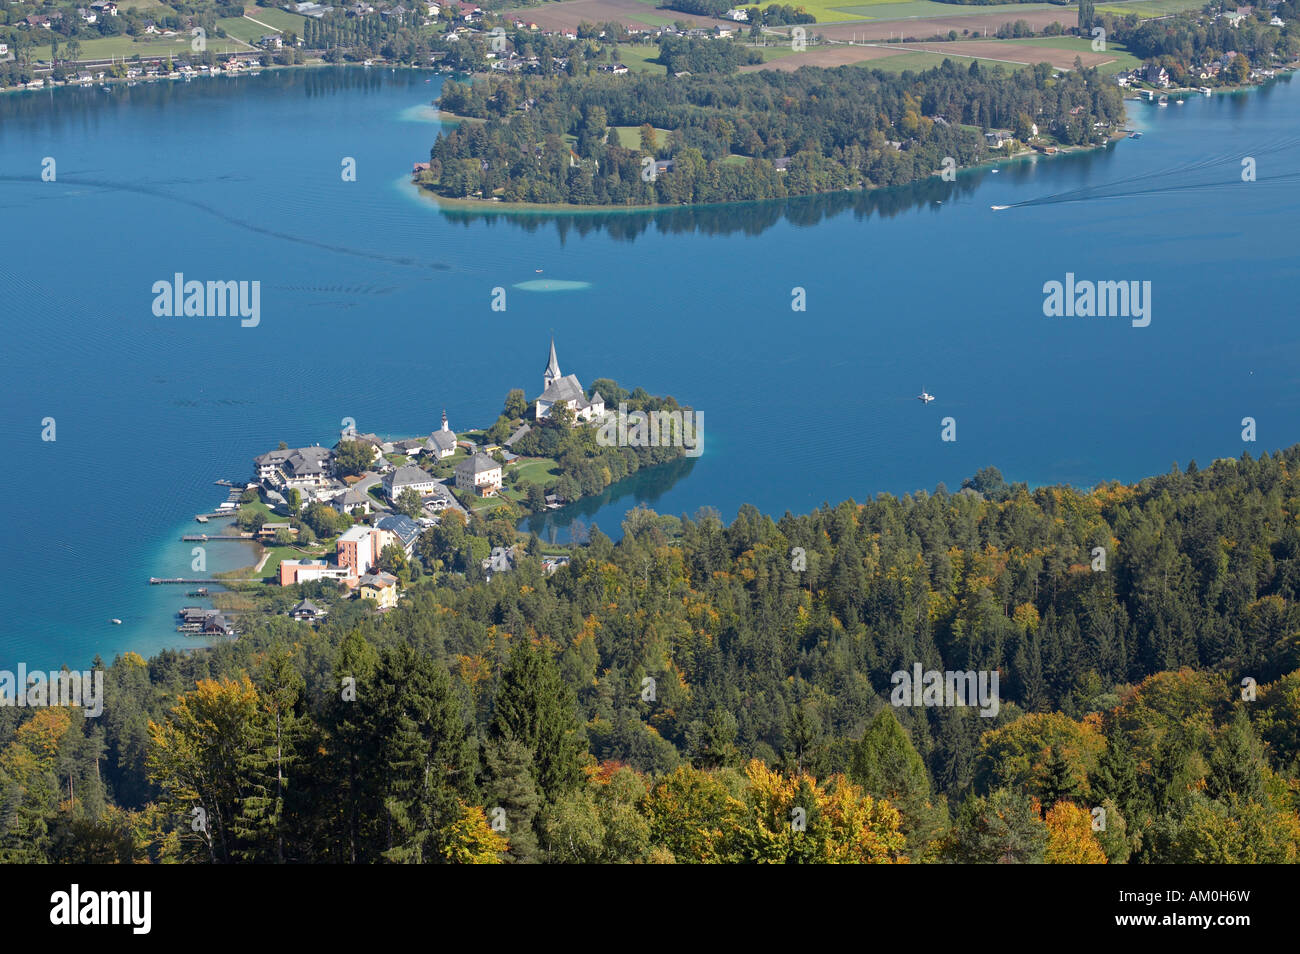 View from Pyramidenkogel to Maria Woerth, Carinthia, Austria Stock Photo